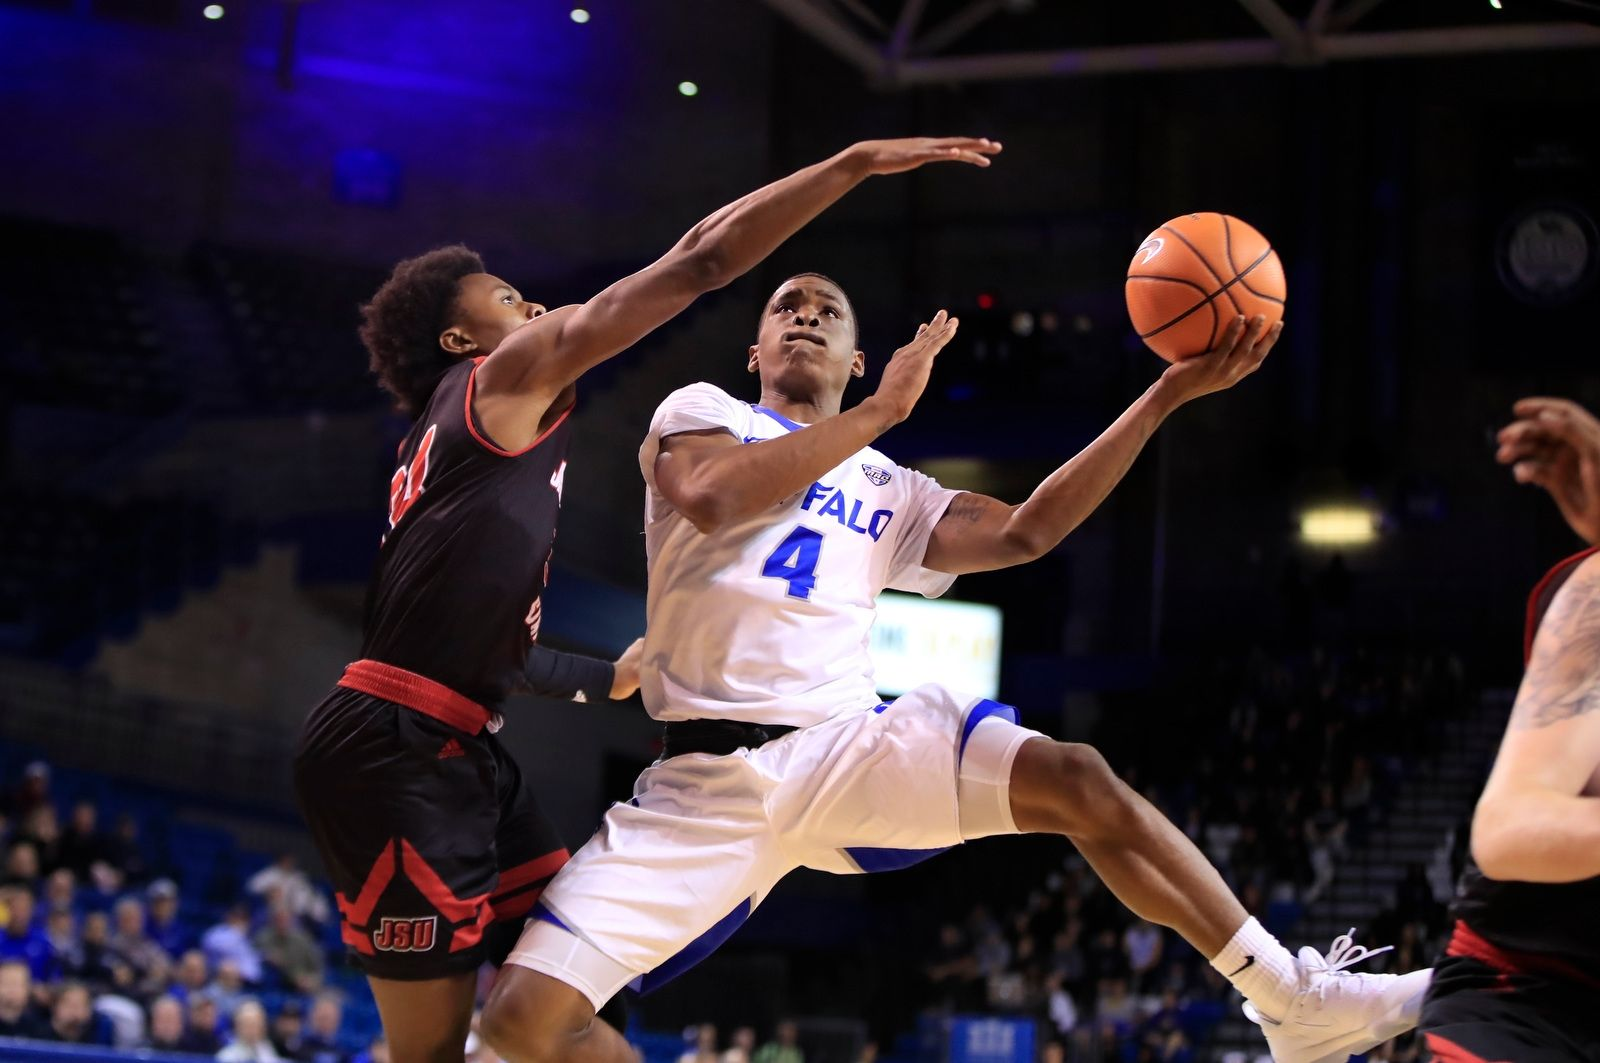 University at Buffalo guard Davonta Jordan drives to the basket against Jacksonville State during second half action at Alumni Arena on Wednesday, Nov. 15, 2017.